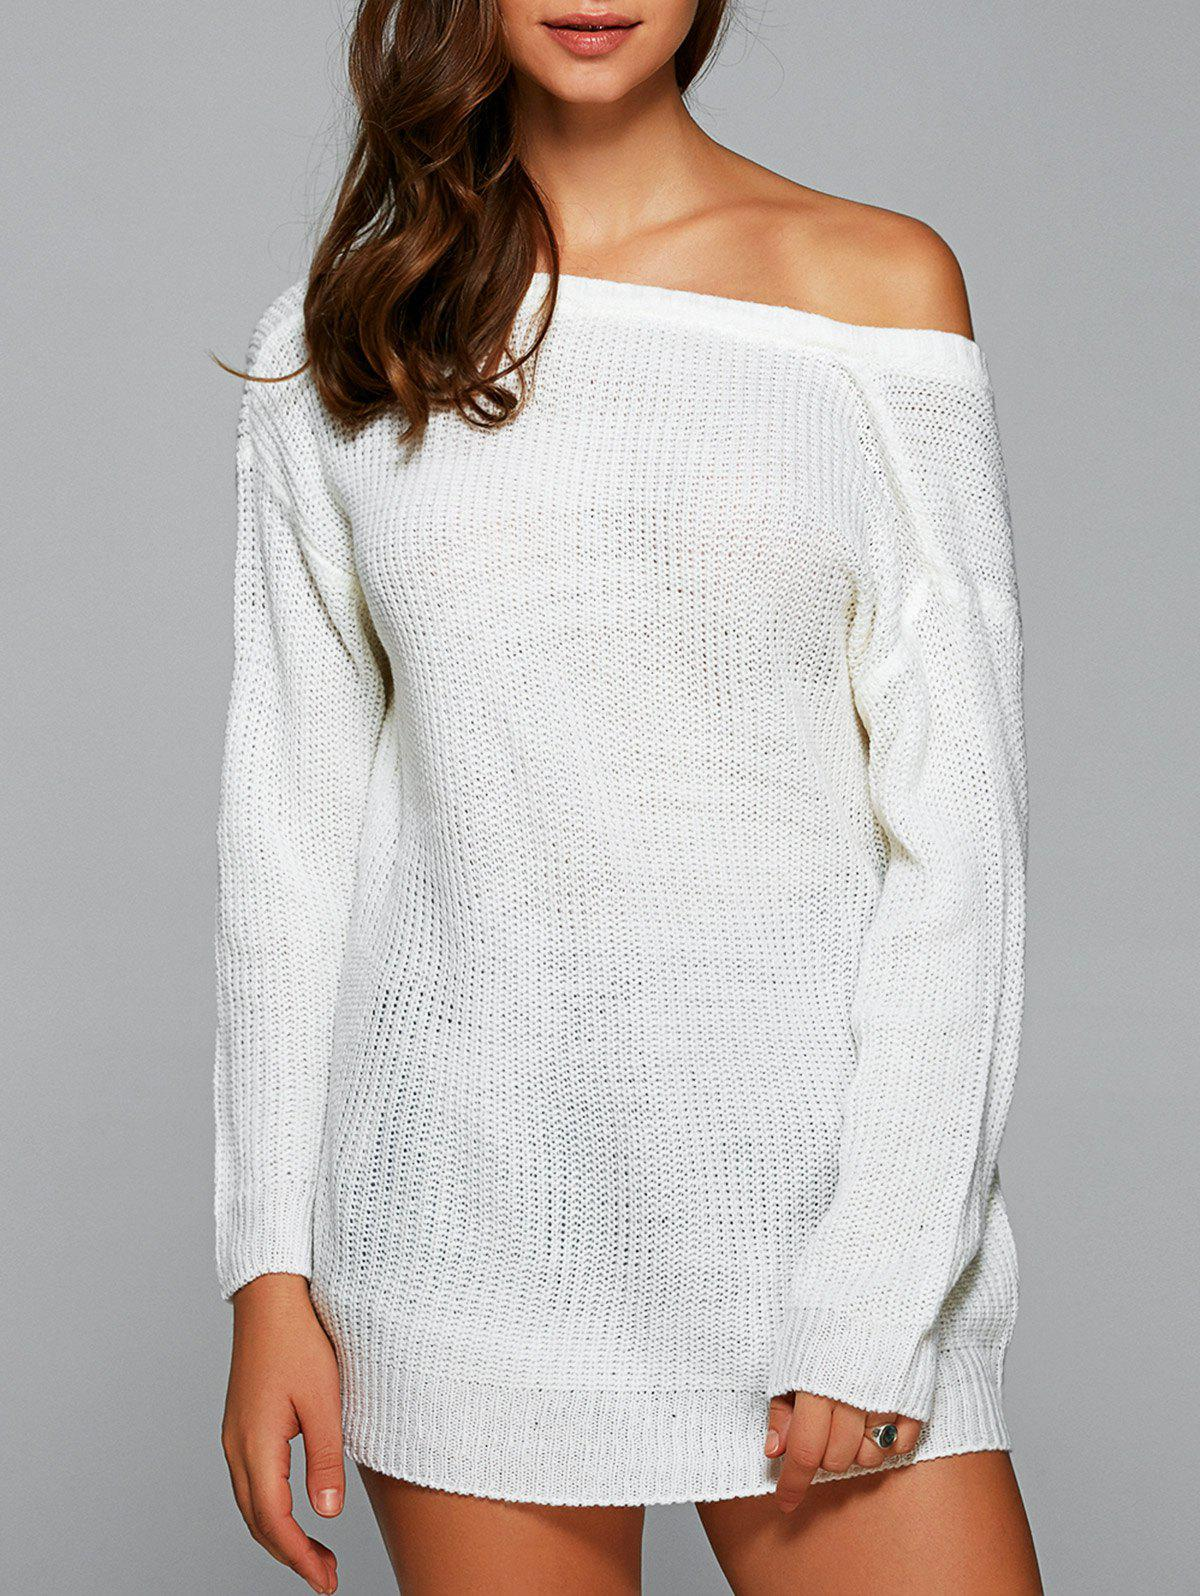 Drop Shoulder Backless Long SweaterWOMEN<br><br>Size: S; Color: WHITE; Type: Pullovers; Material: Cotton,Polyester; Sleeve Length: Full; Collar: Skew Collar; Style: Fashion; Pattern Type: Solid; Season: Fall,Spring,Winter; Elasticity: Elastic; Weight: 0.250kg; Package Contents: 1 x Sweater;